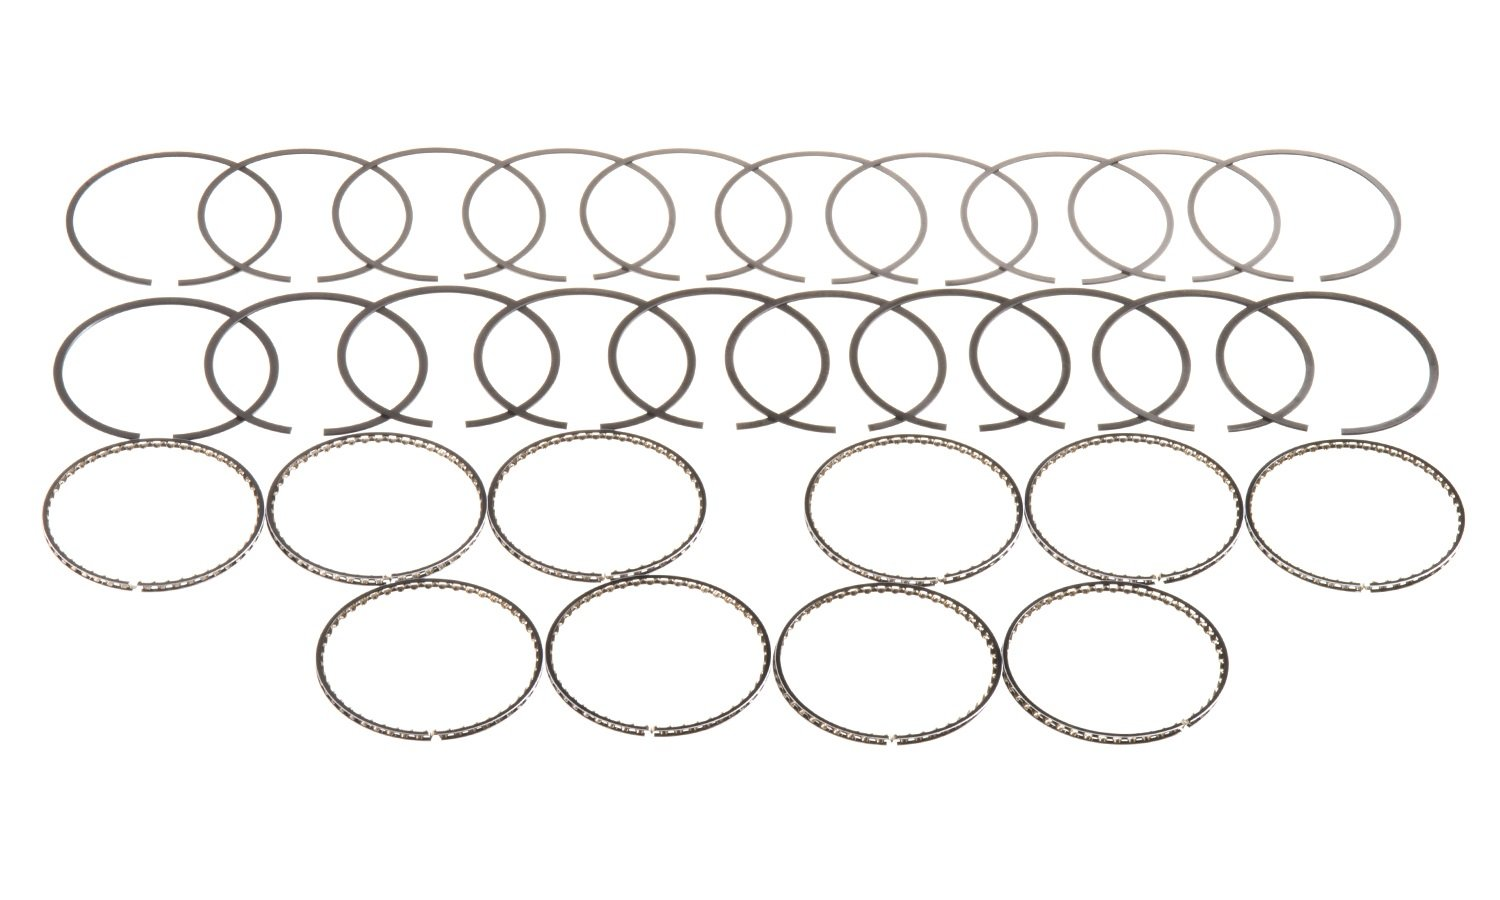 hastings 2m4814 piston ring set